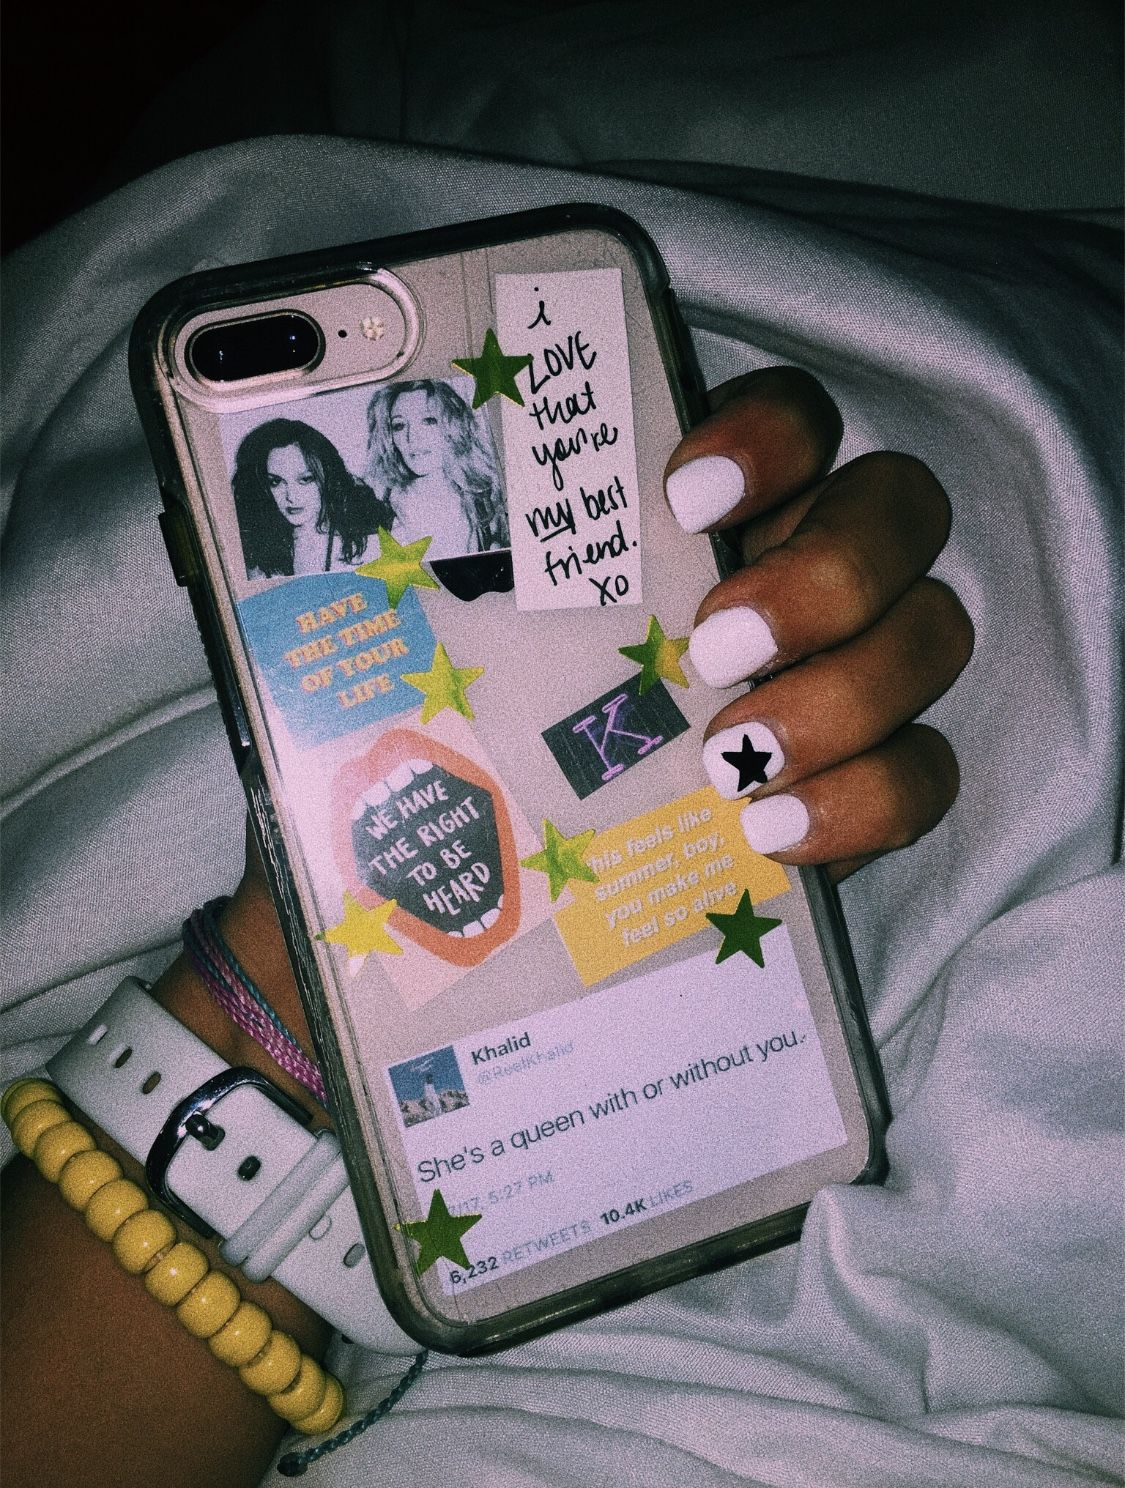 Pin by ☼ ashley ☼ on ♧ phone goals ♧ | Diy phone case ...